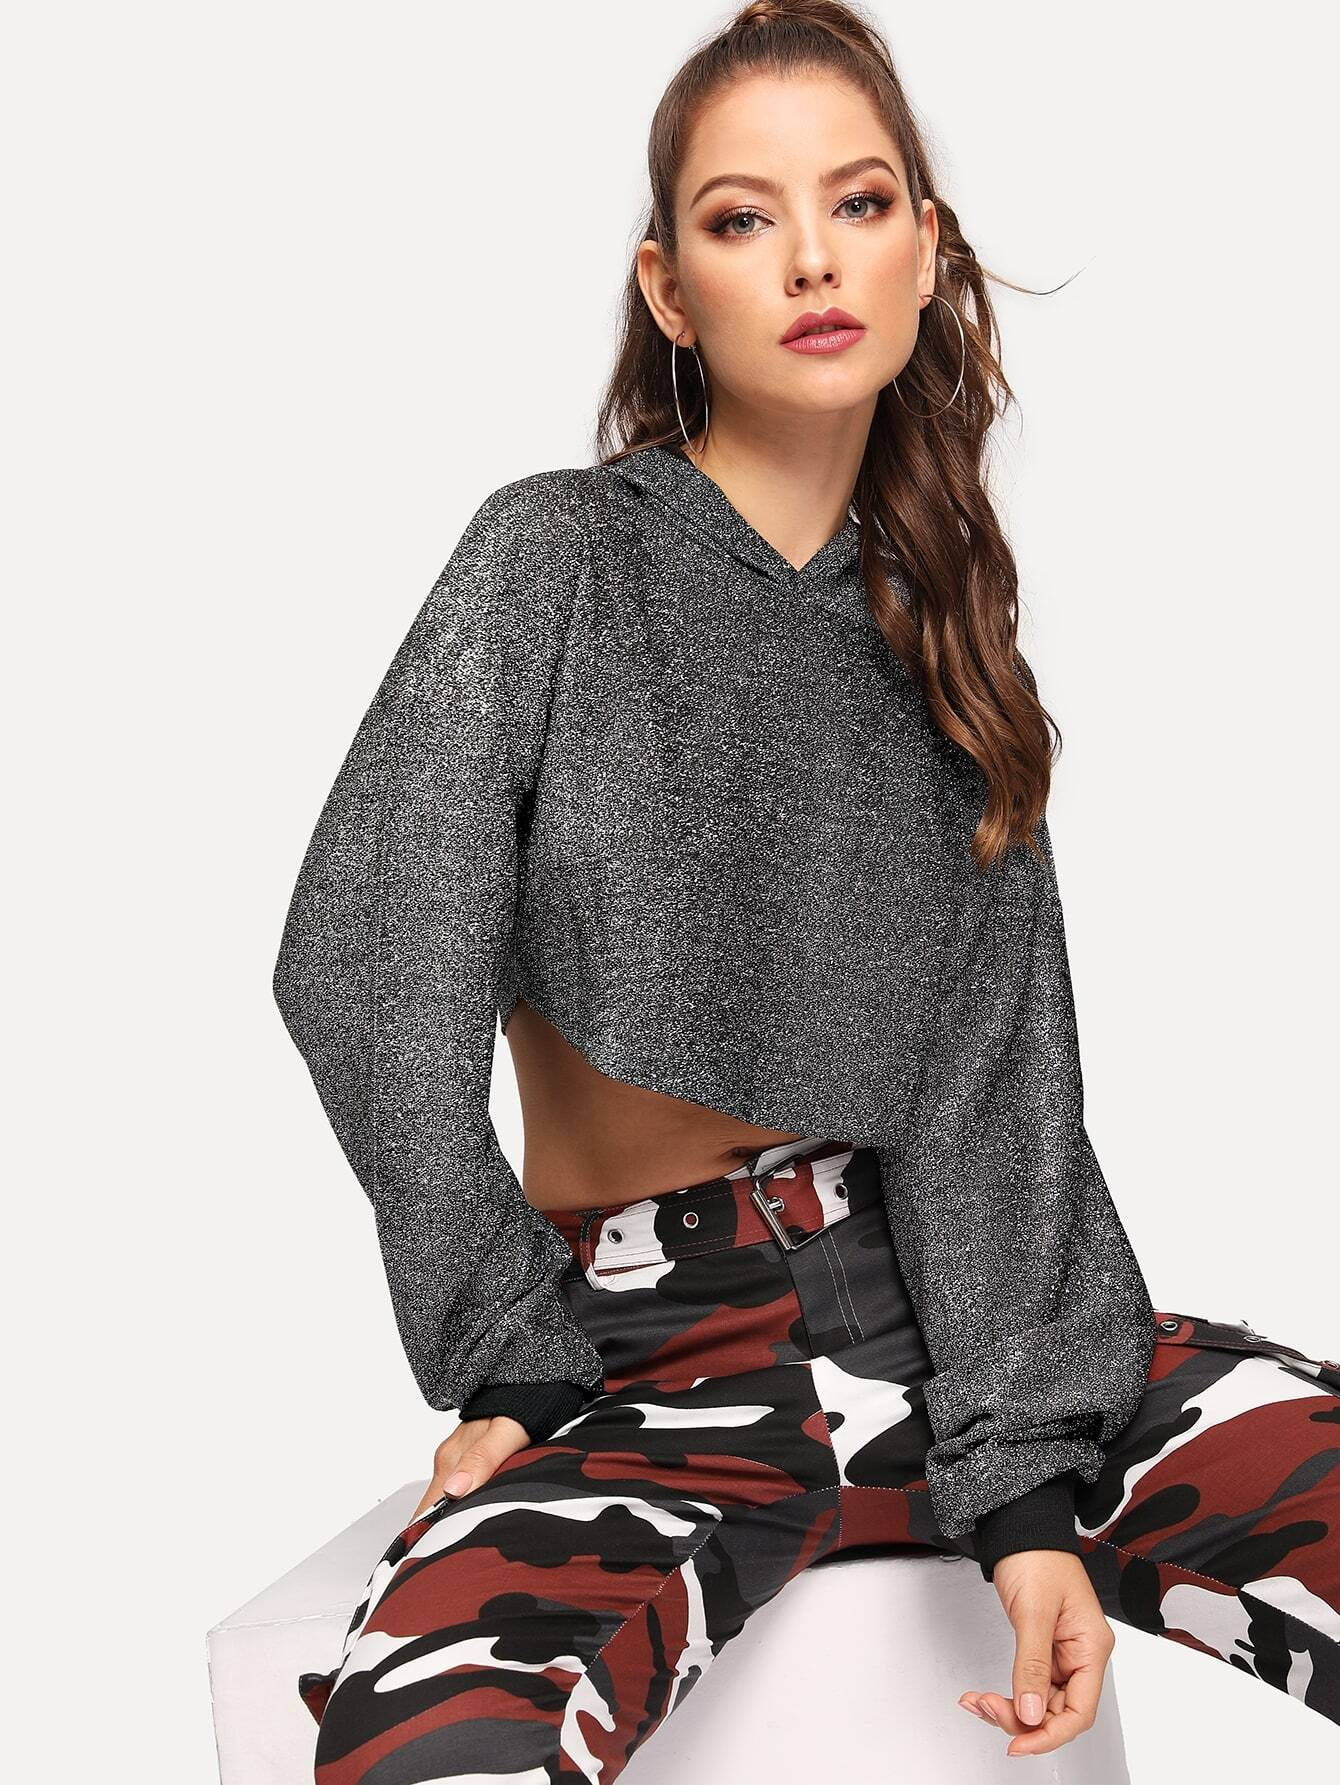 Drop Shoulder Glitter Crop Hooded Sweatshirt Drop Shoulder Glitter Crop Hooded Sweatshirt